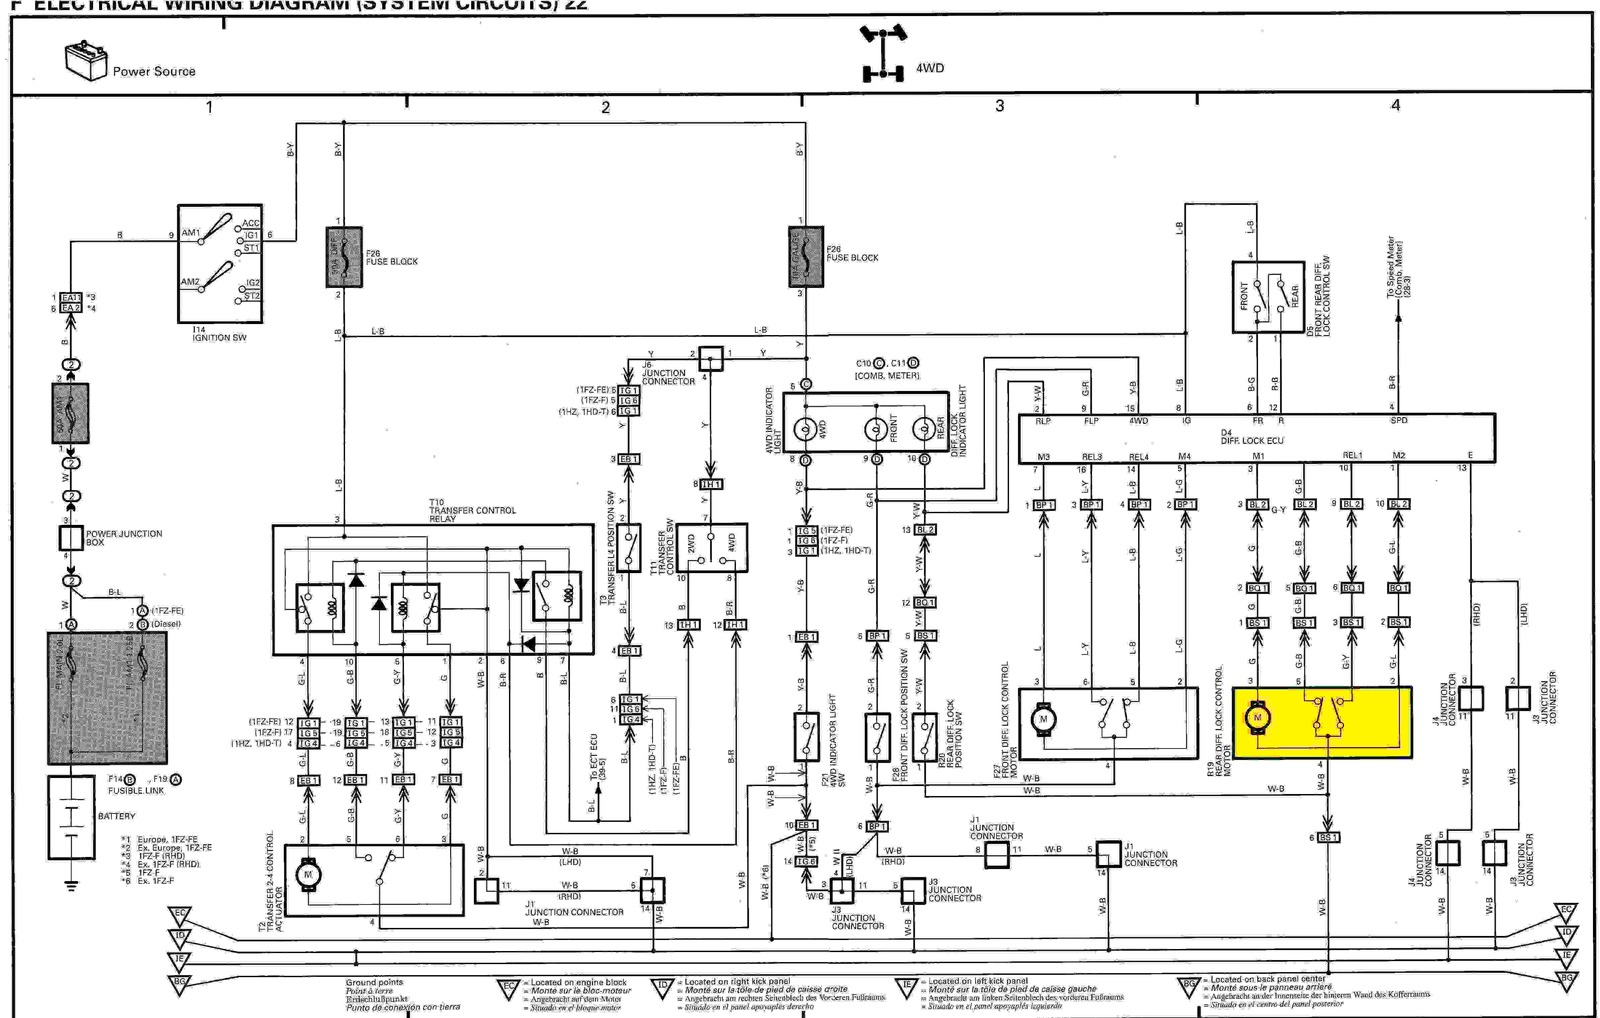 1hd fte wiring diagram toyota landcruiser 80 series wiring diagram 80 series landcruiser wiring diagram at n-0.co